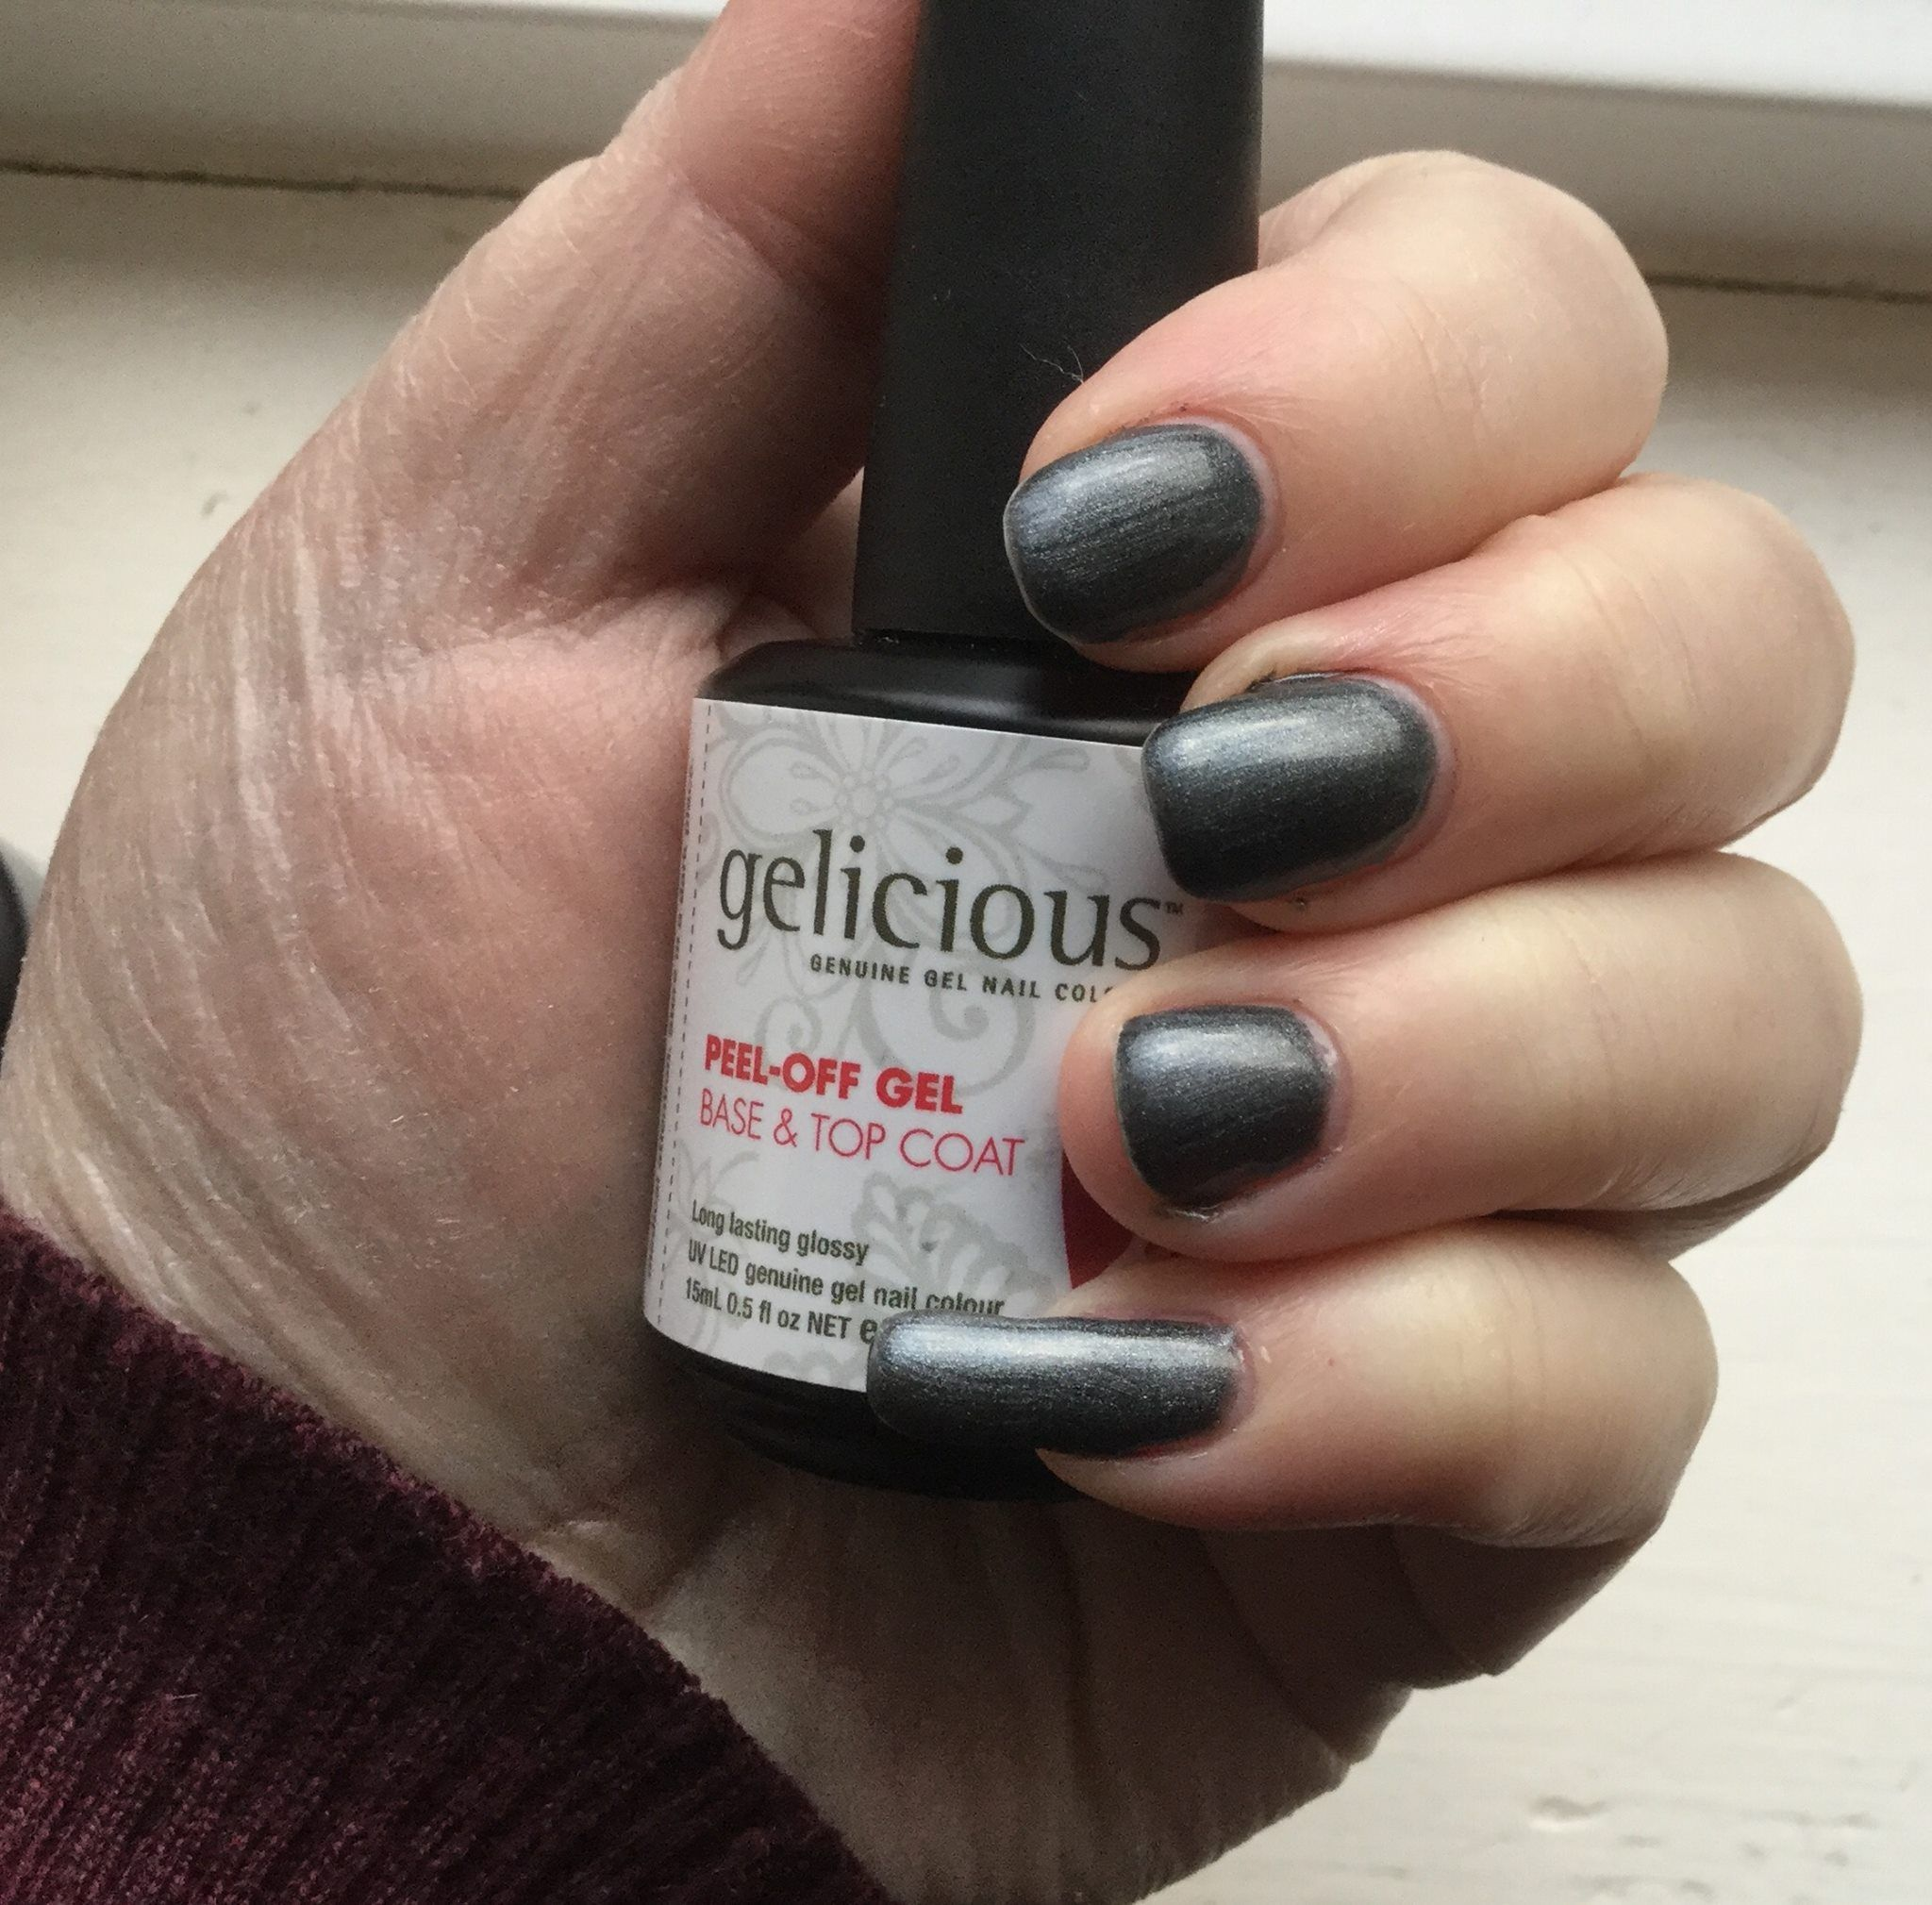 Gelicious Gel Polish in Gun Metal, together with the Peel Off Base ...